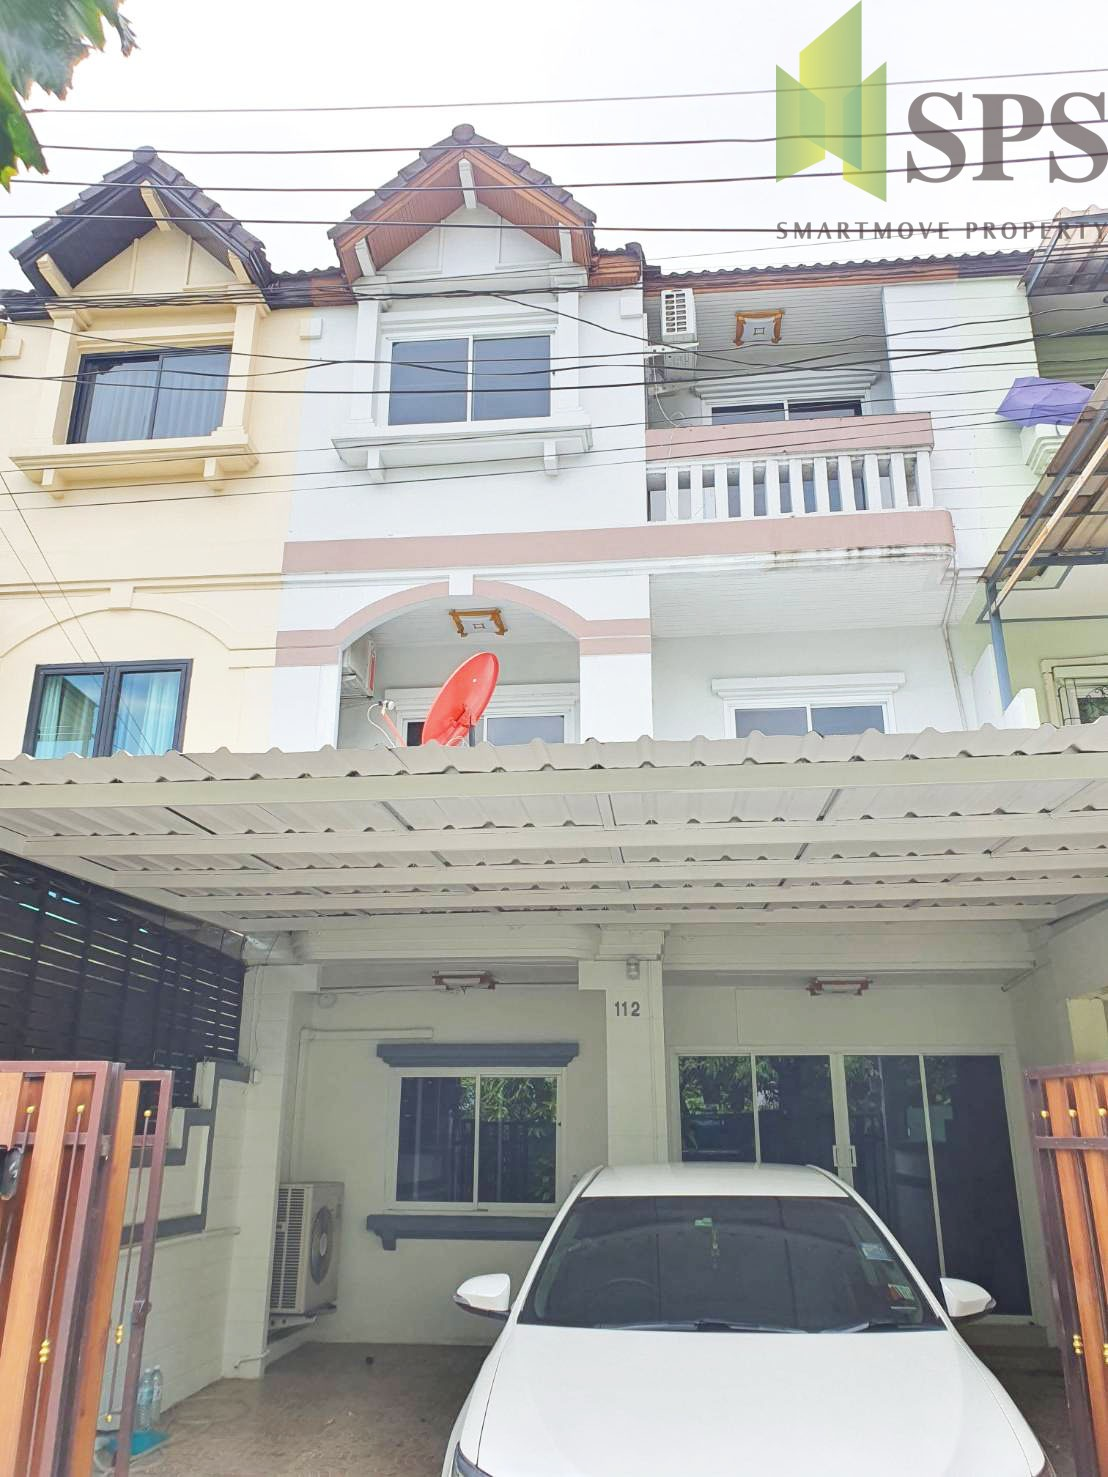 Townhome for RENT / SALE in Sukhumvit 66/1 (SPSP306)